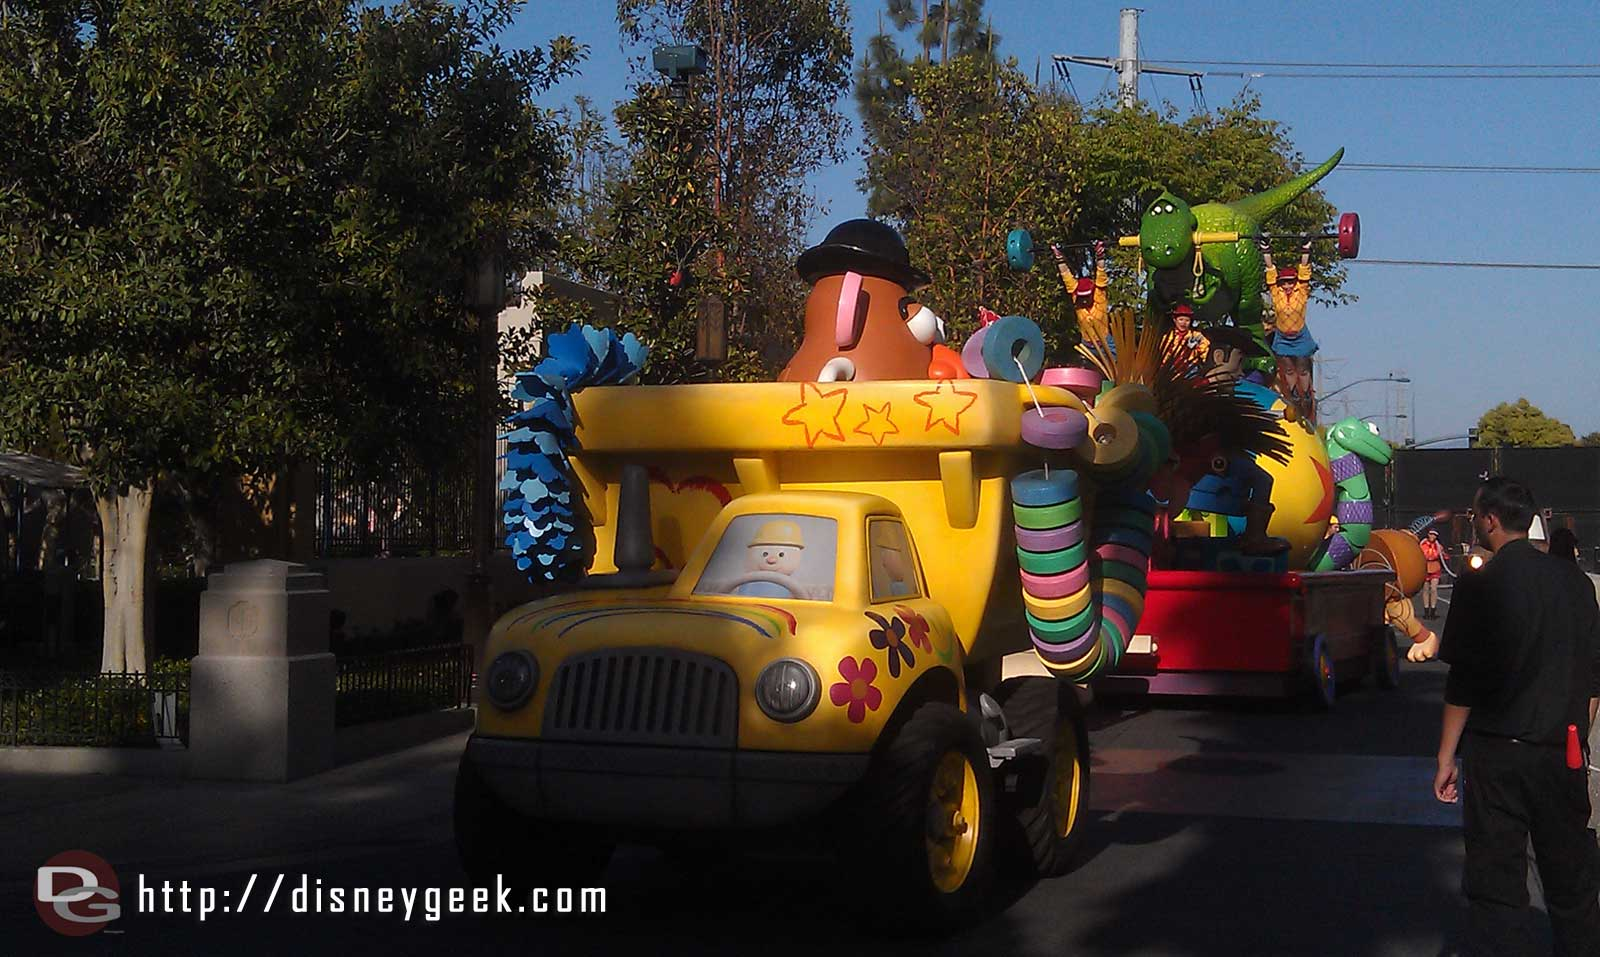 The Toy Story segment rolling along in the Pixar Play Parade